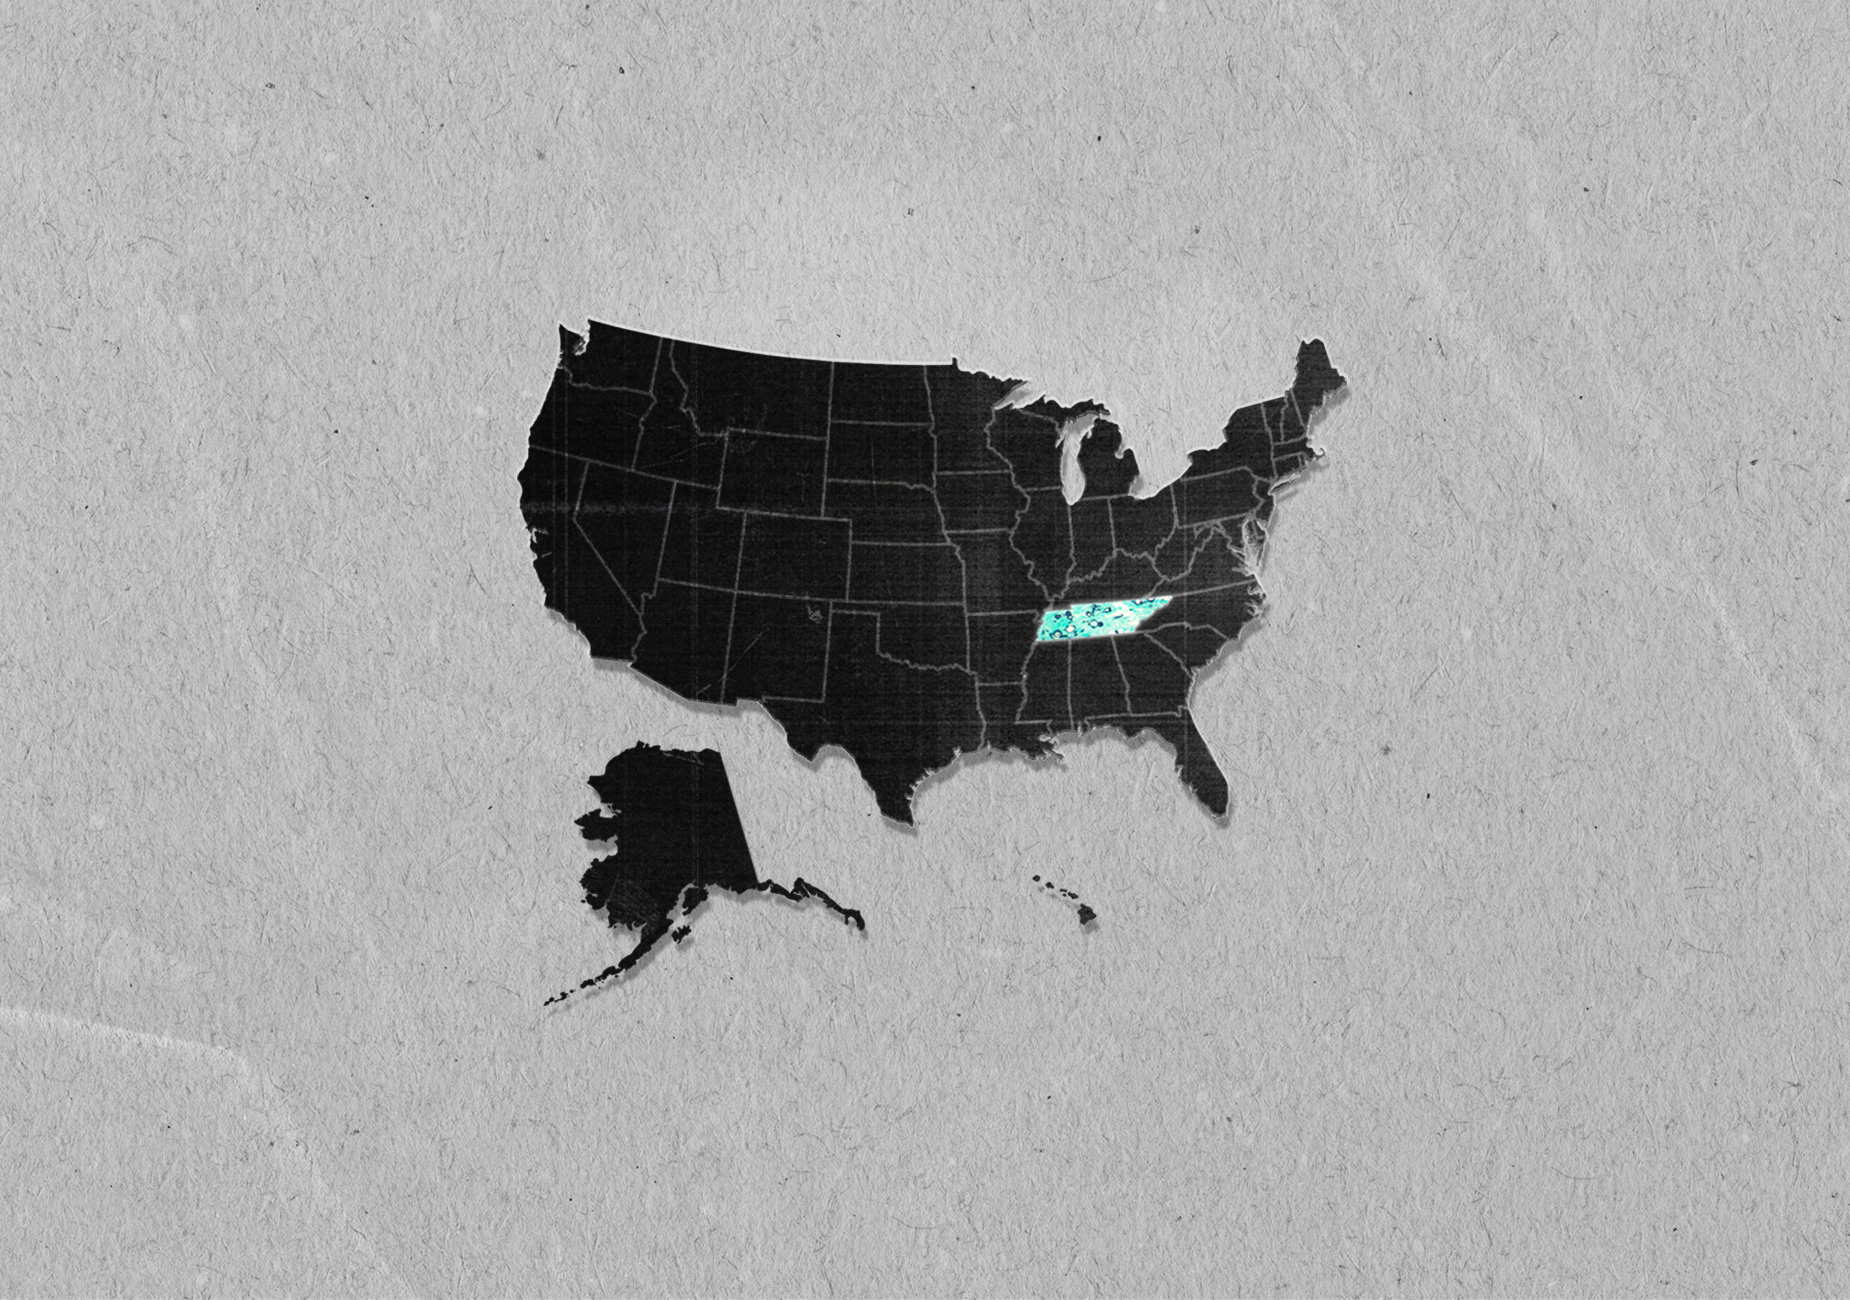 The state of Tennessee is filled in bright blue on black vector US map on grey paper background.